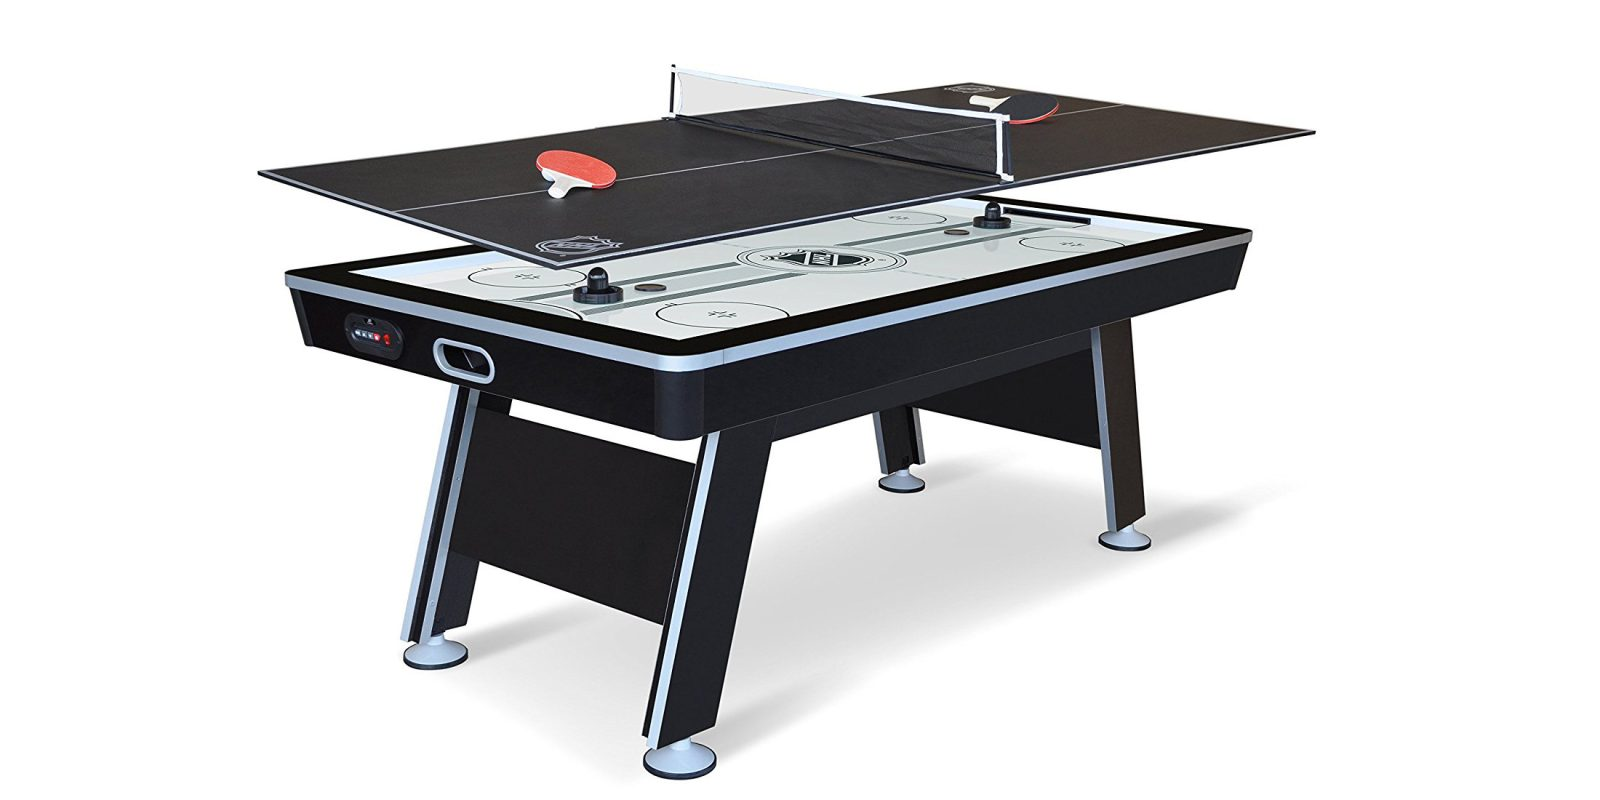 Bring home an 80″ Powered Air Hockey + Ping Pong Table: $139 (Reg. up to $330)